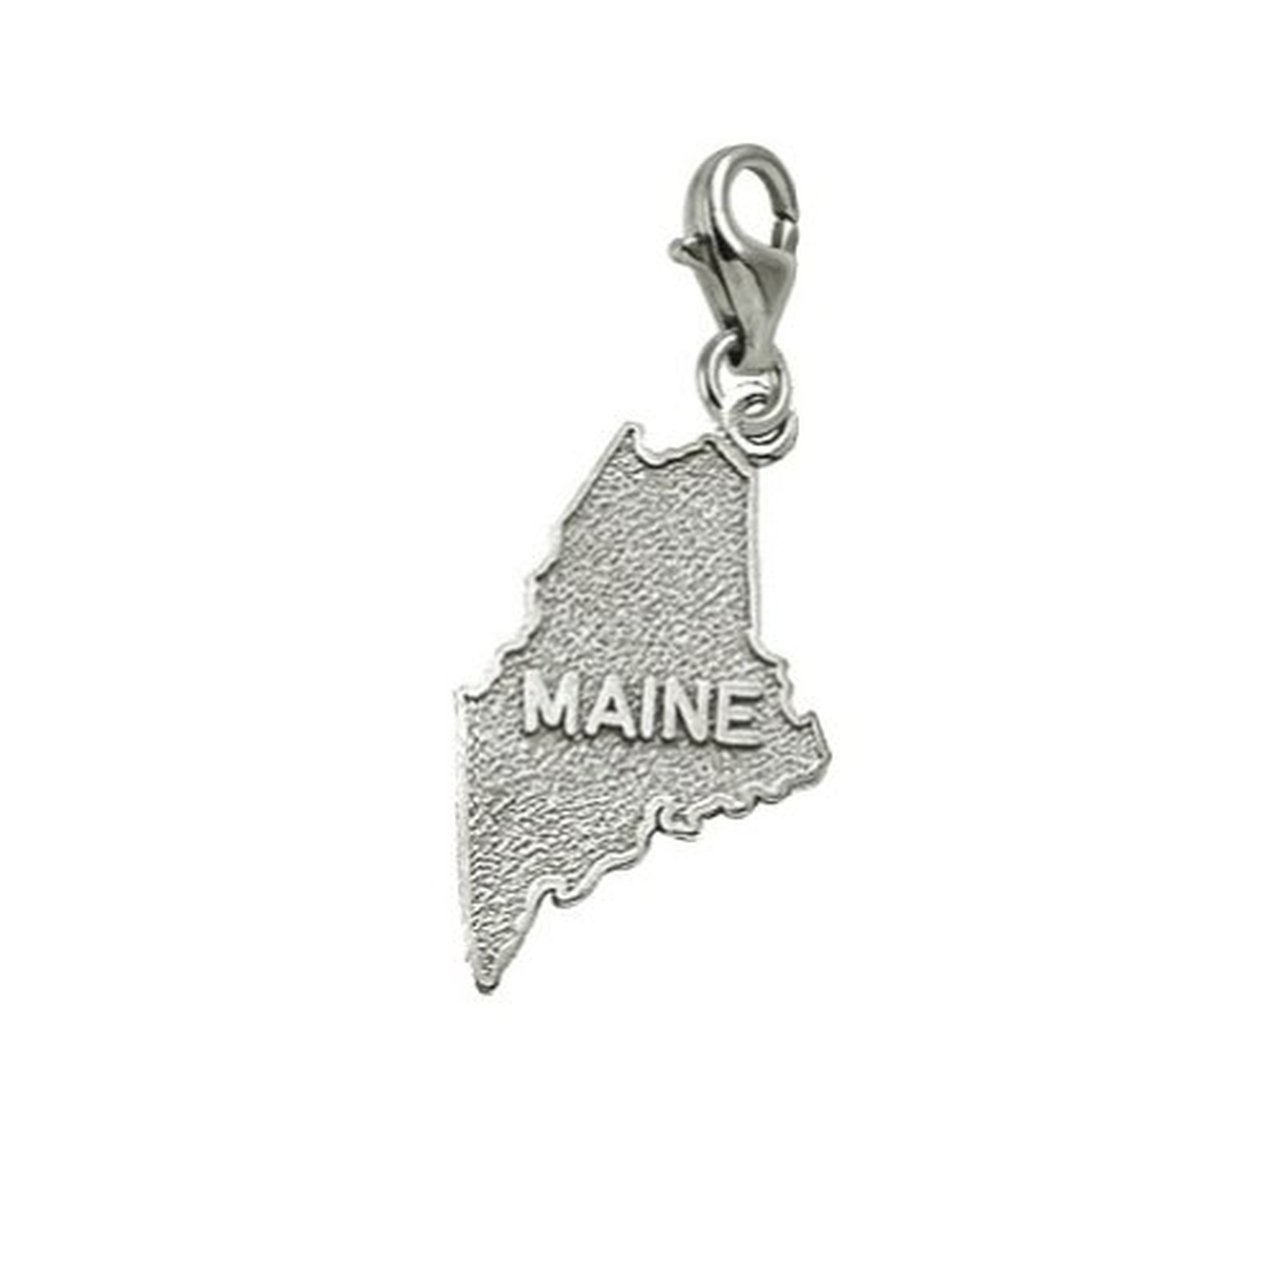 Maine Charm With Lobster Claw Clasp Charms for Bracelets and Necklaces